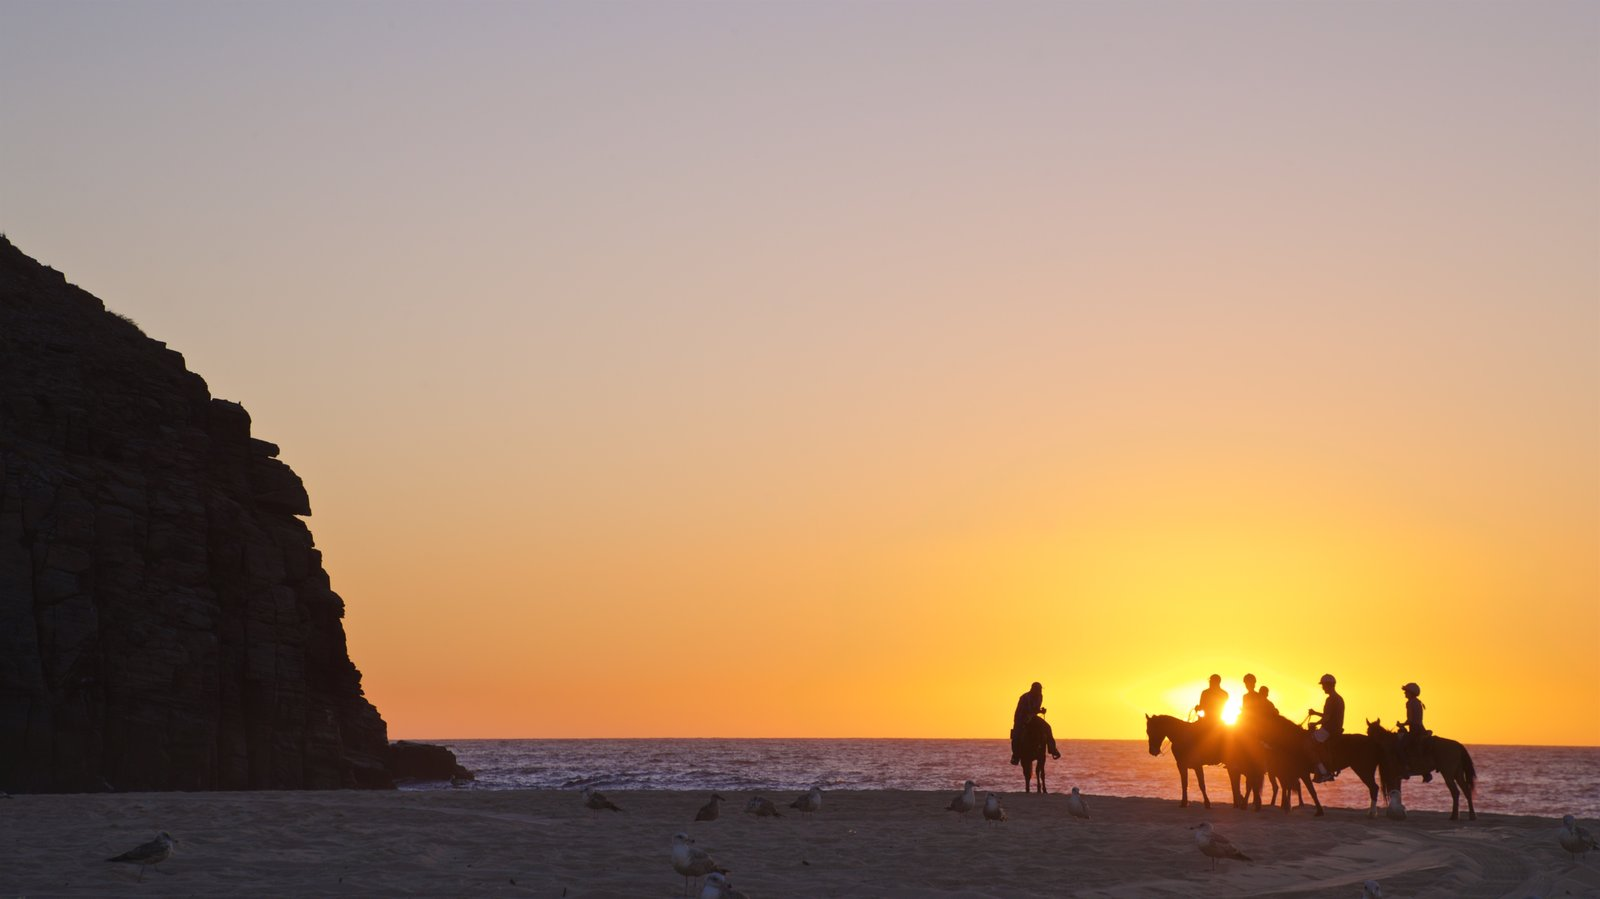 Punta Lobos showing land animals, a sunset and horse riding